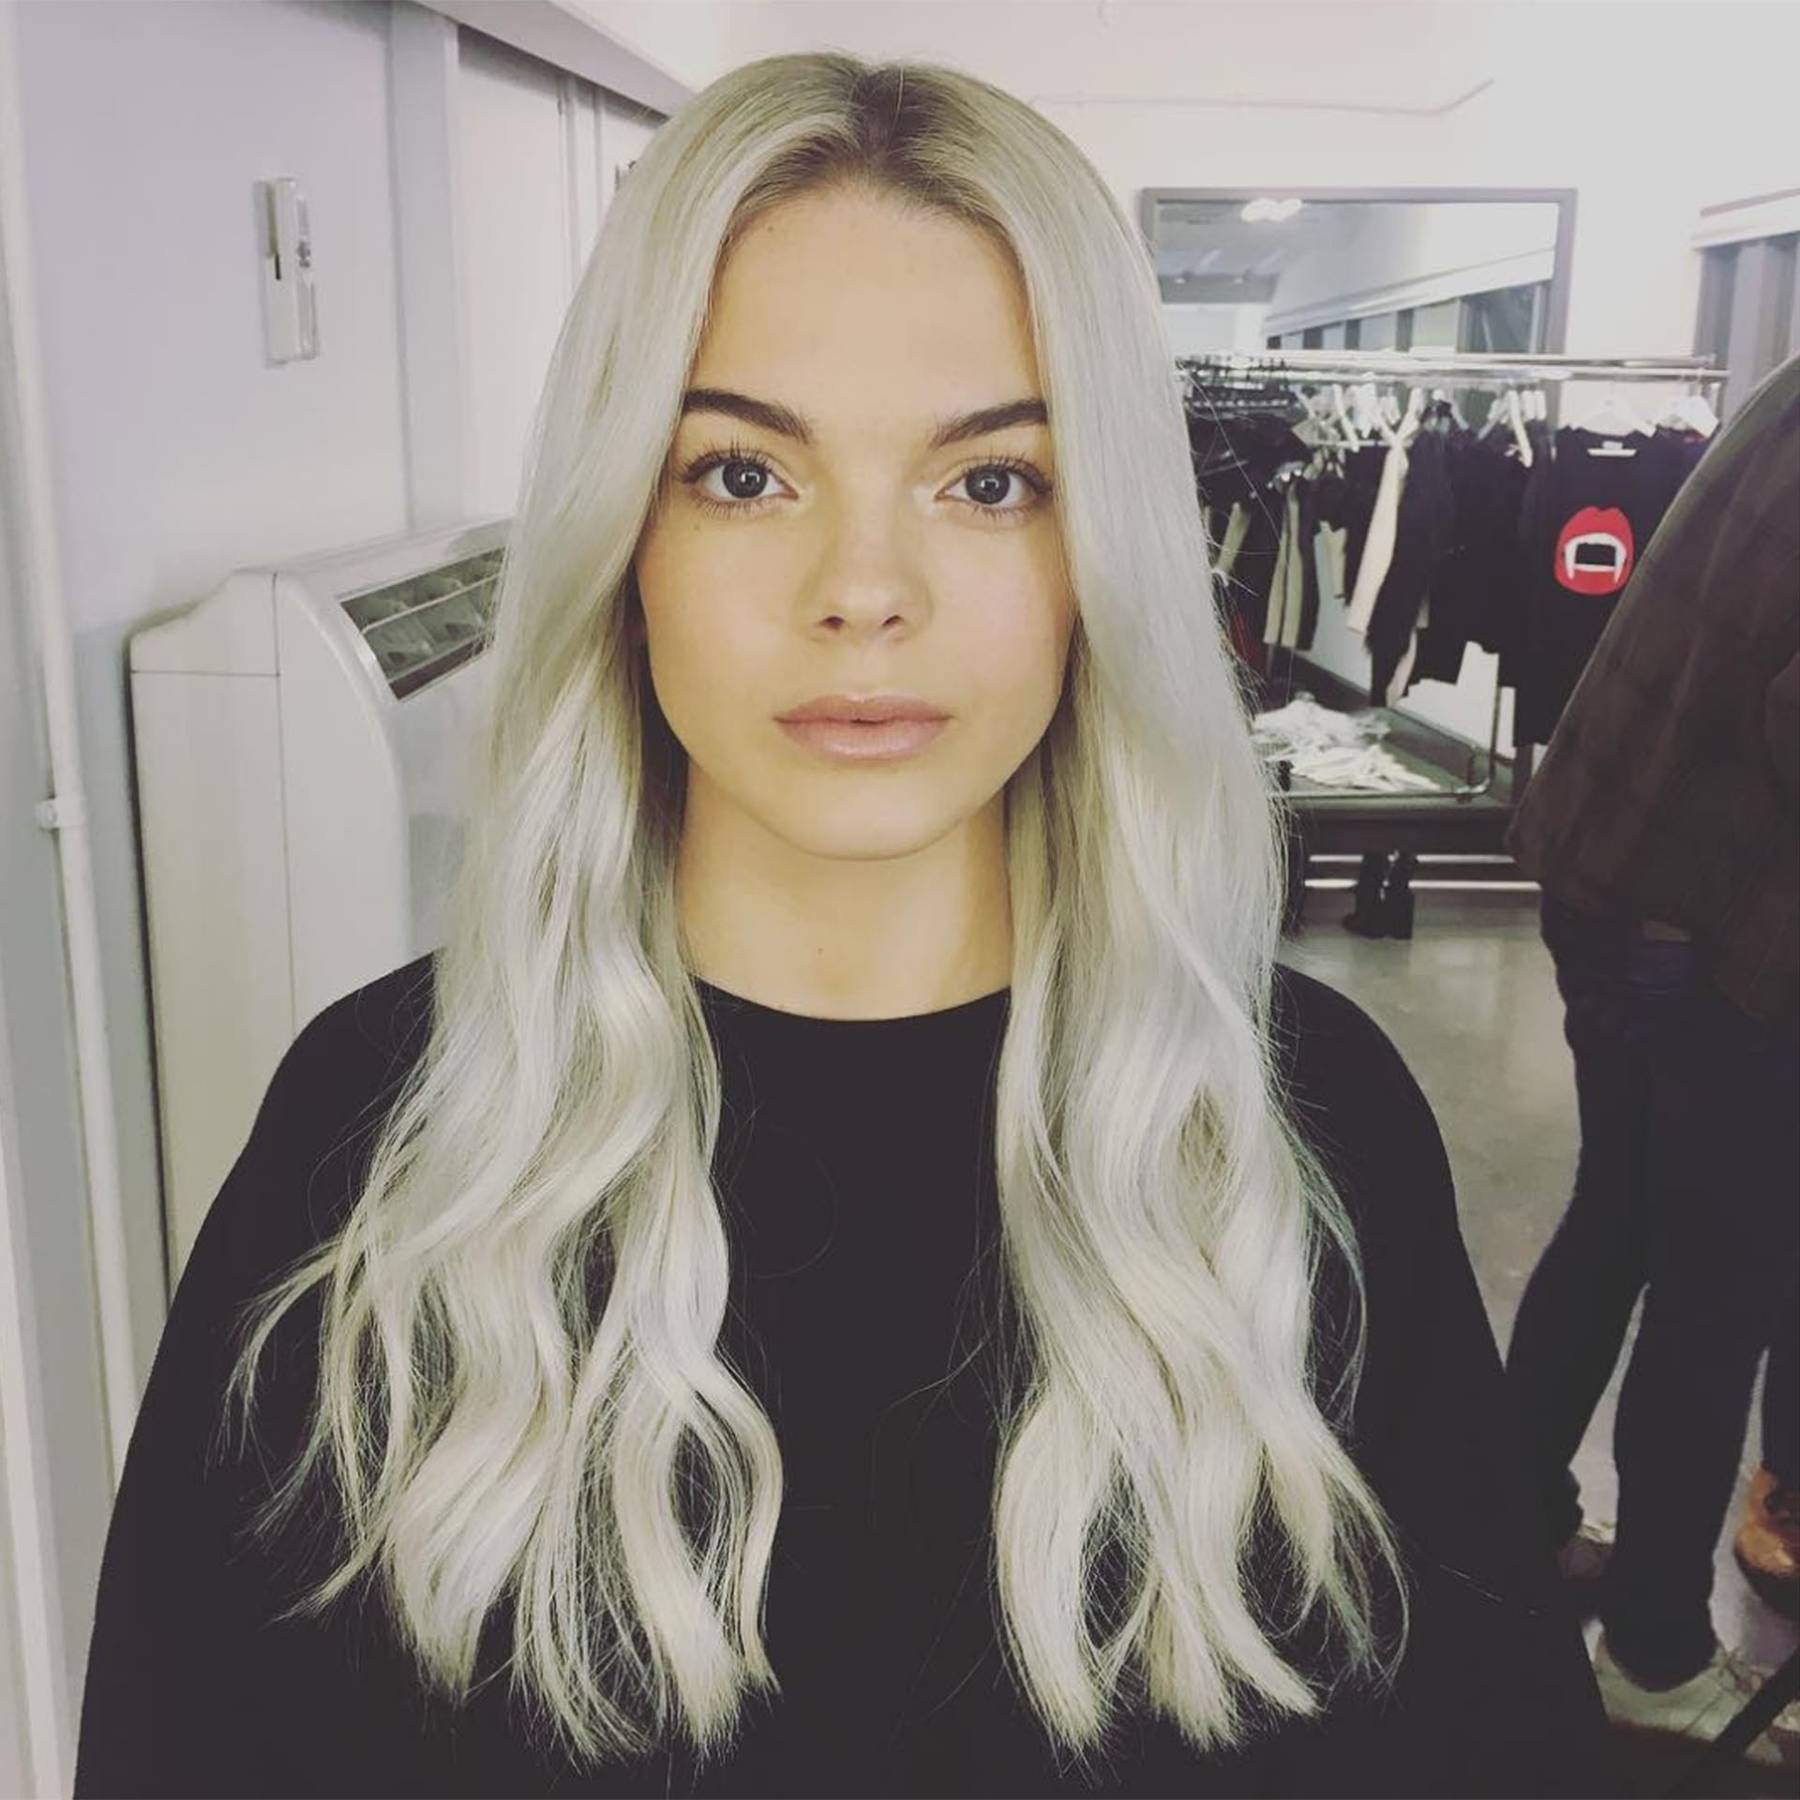 Hair Extensions How To Wear Glue In Extensions Like Celebrities